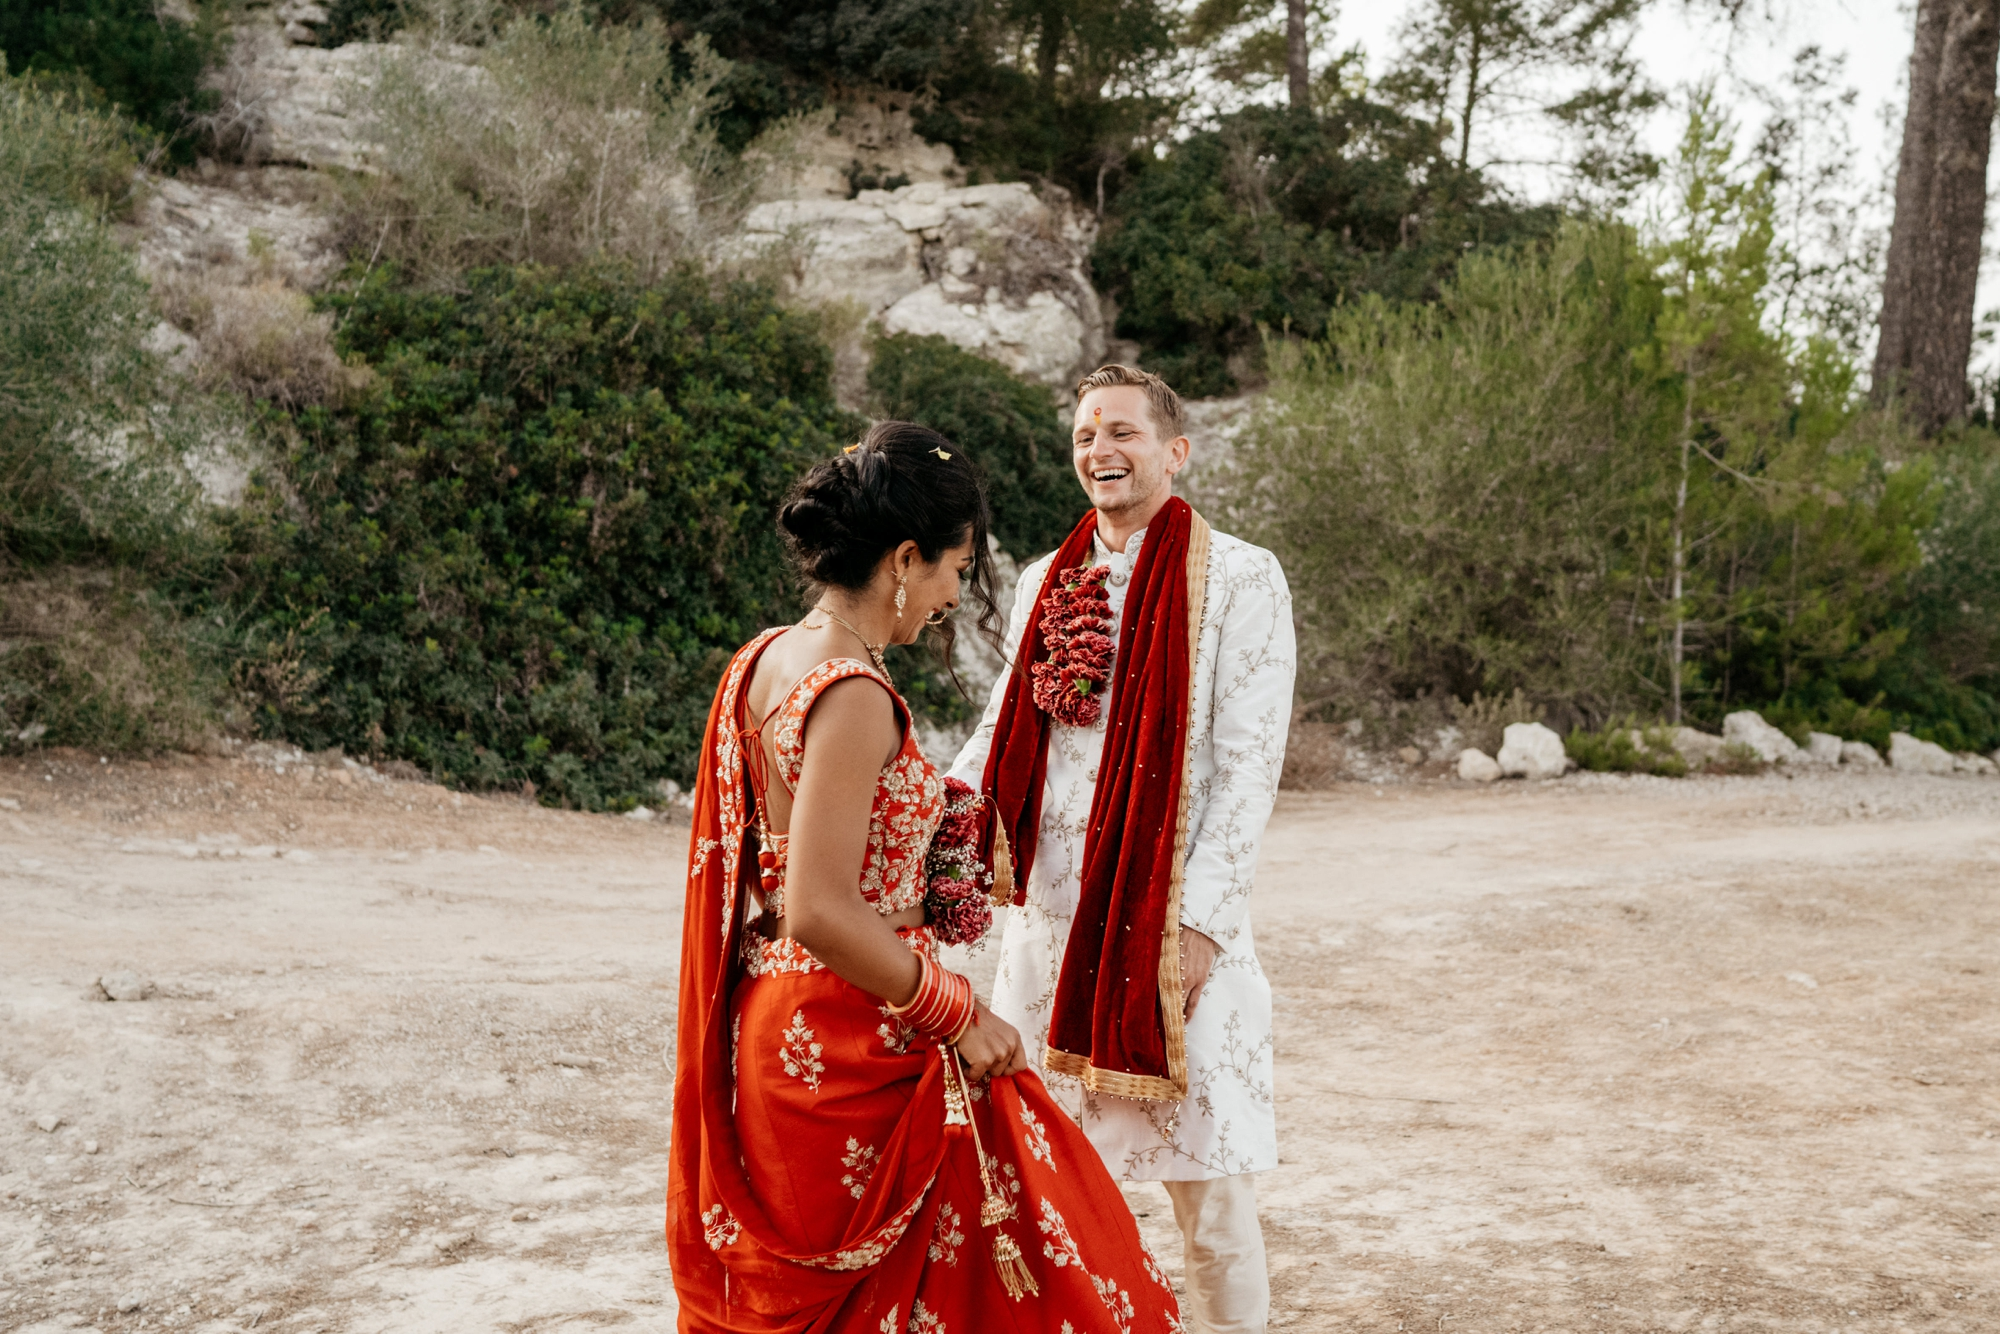 natural wedding photography mallorca boda hindu 0155 1